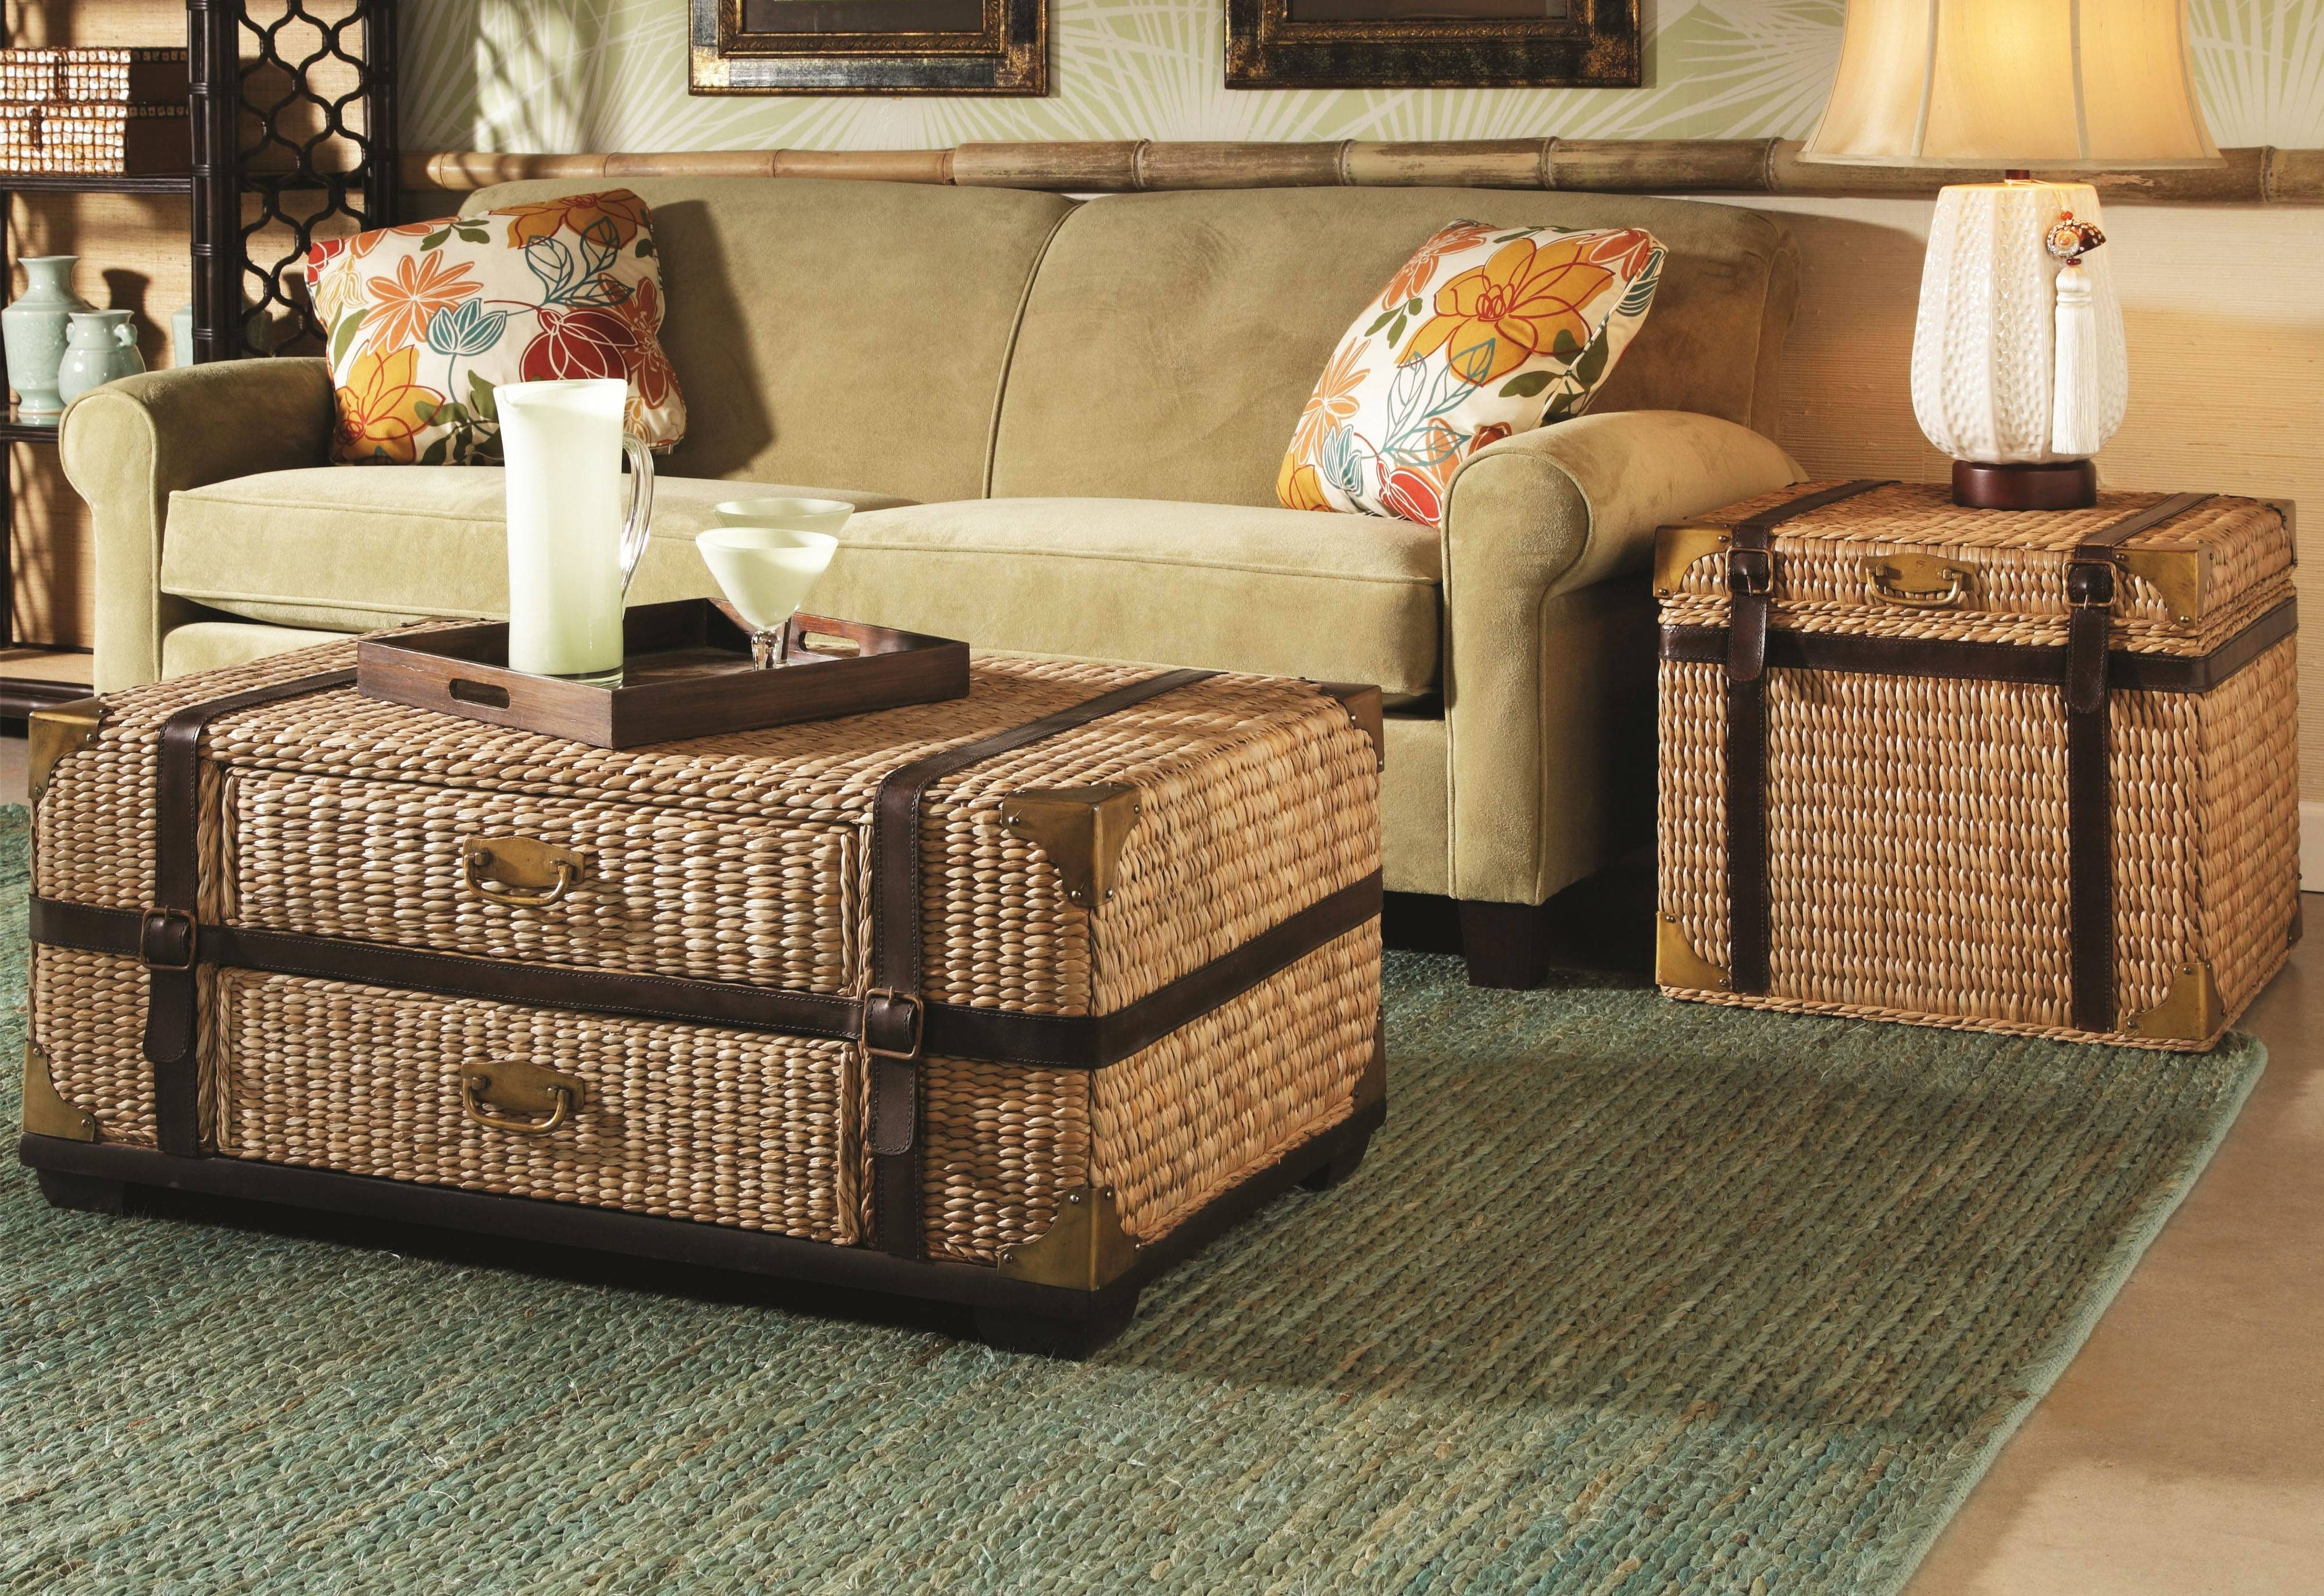 Coffee Tables With Wicker Basket Storage | Coffee Tables Decoration With Regard To Coffee Table With Wicker Basket Storage (View 3 of 30)